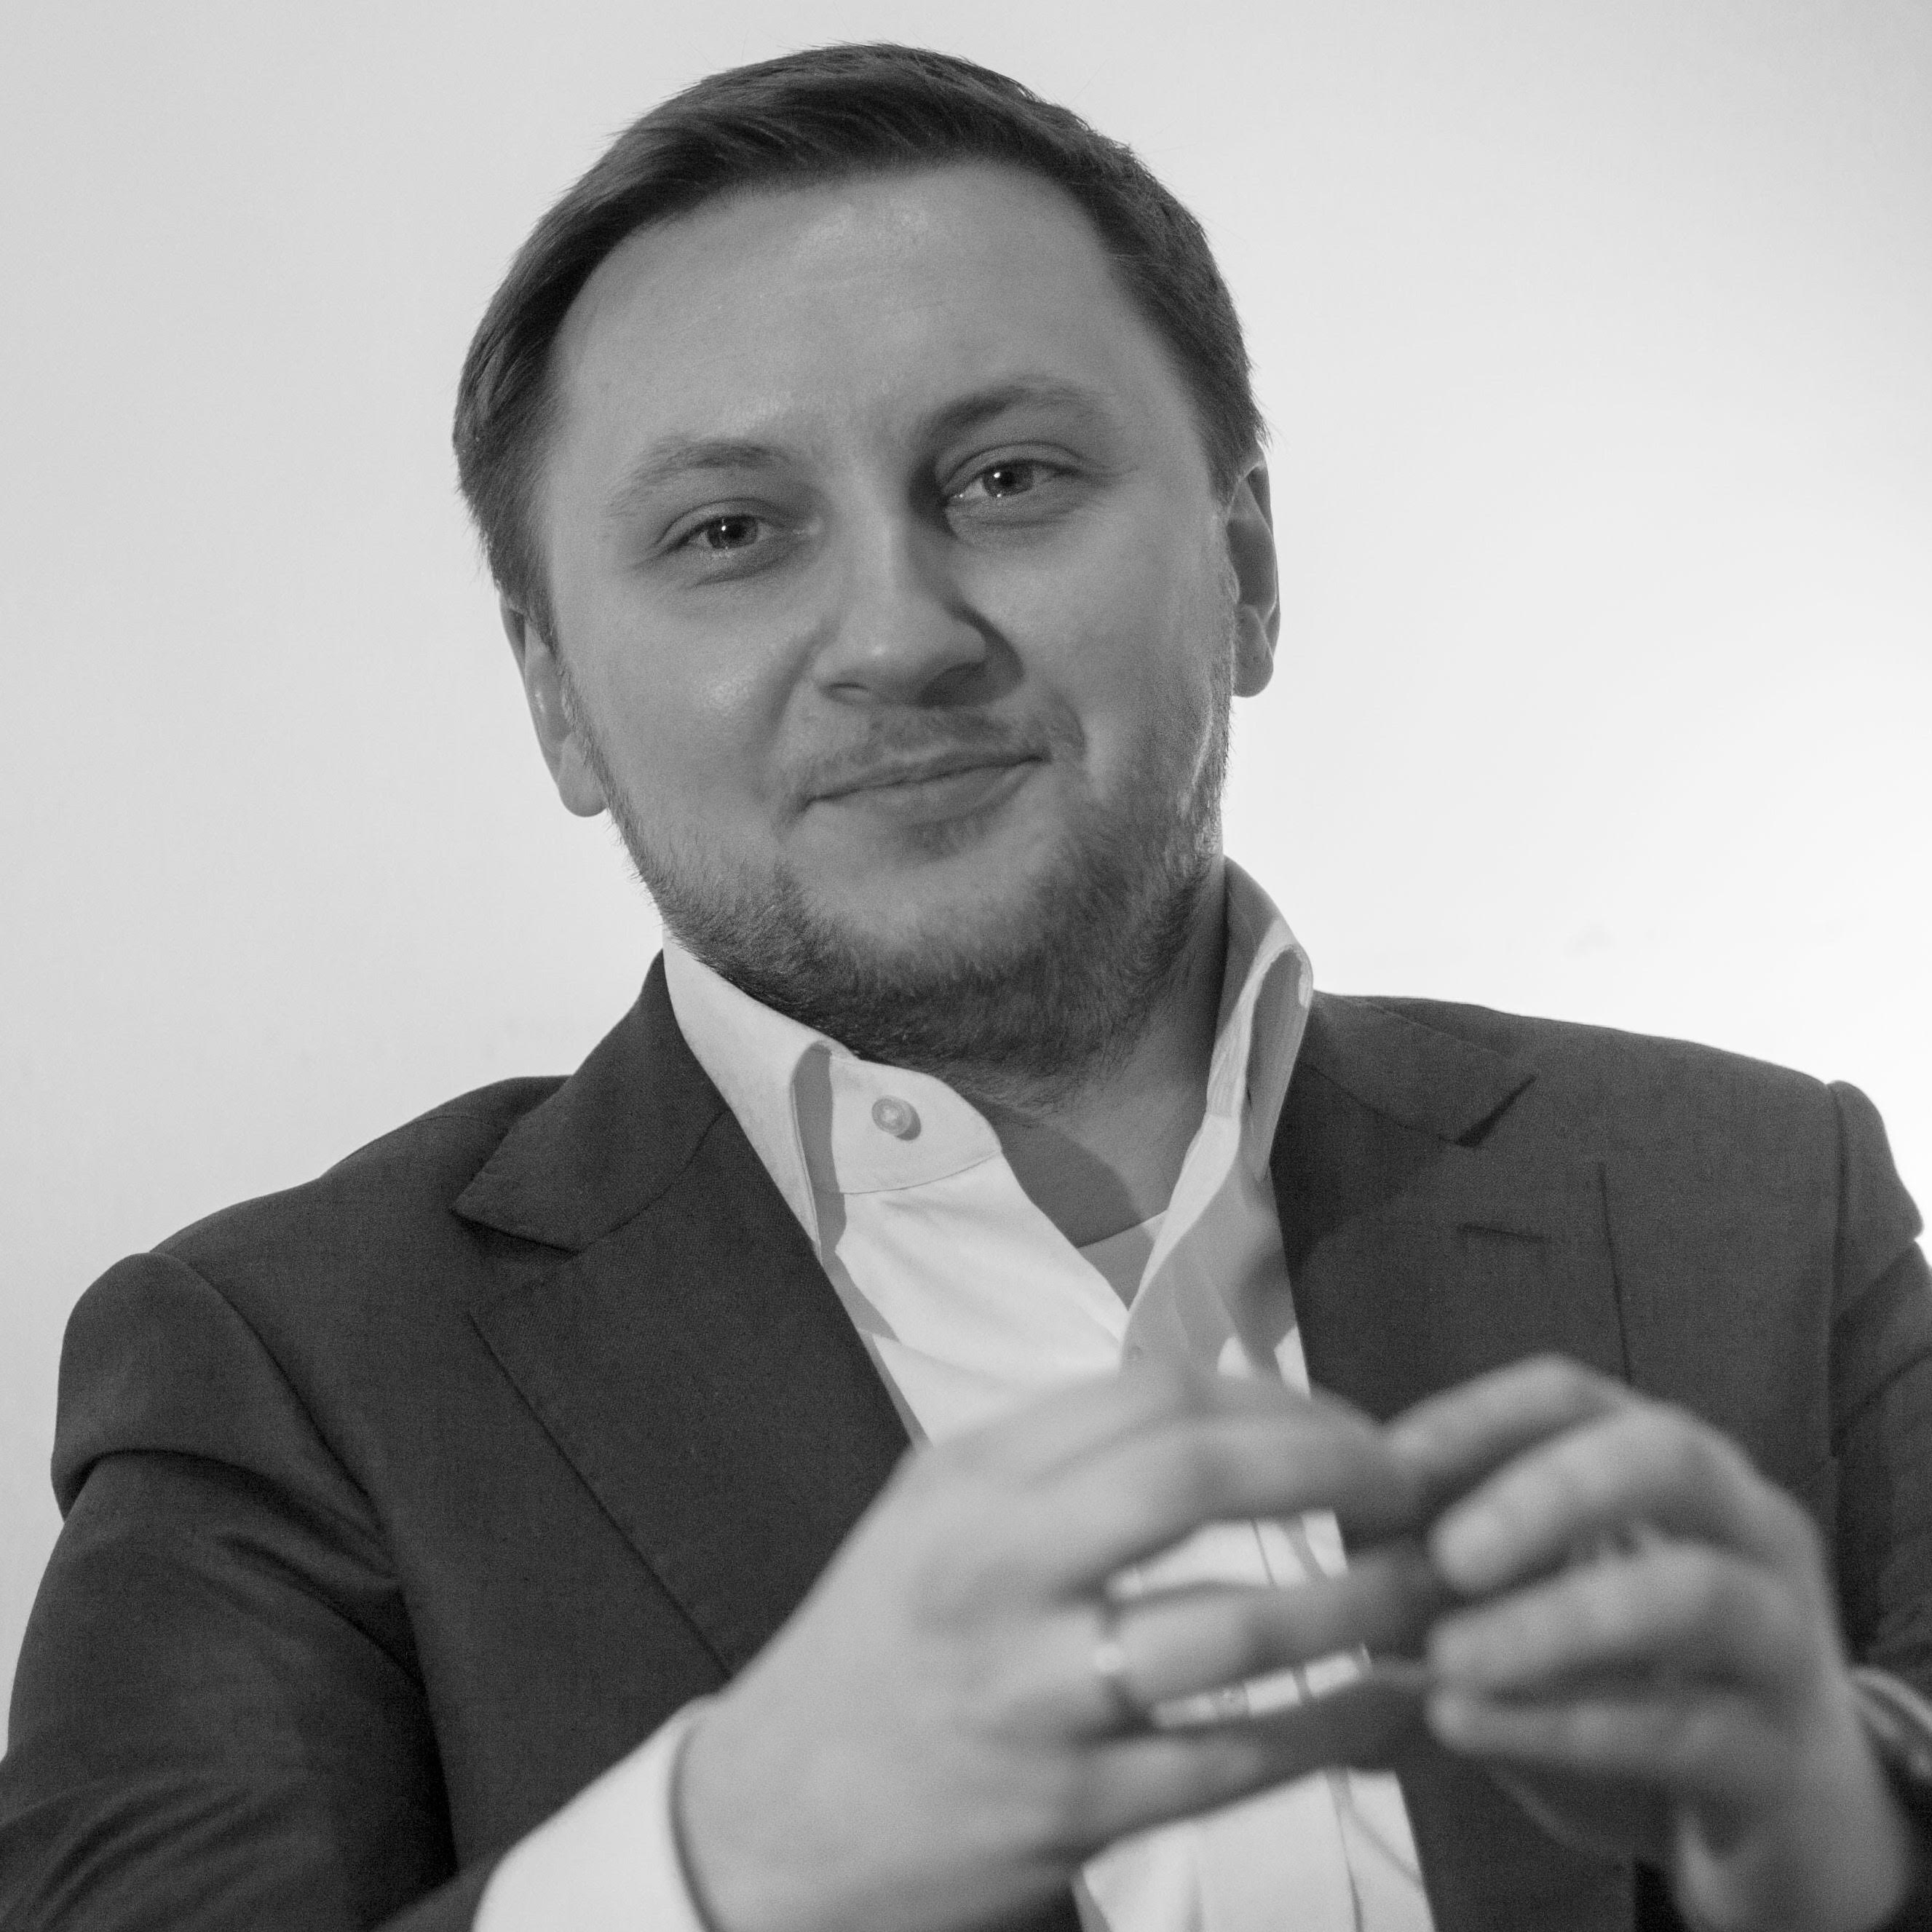 Maksim Hramadtsou, Co-Founder & COO, CRYPTTO